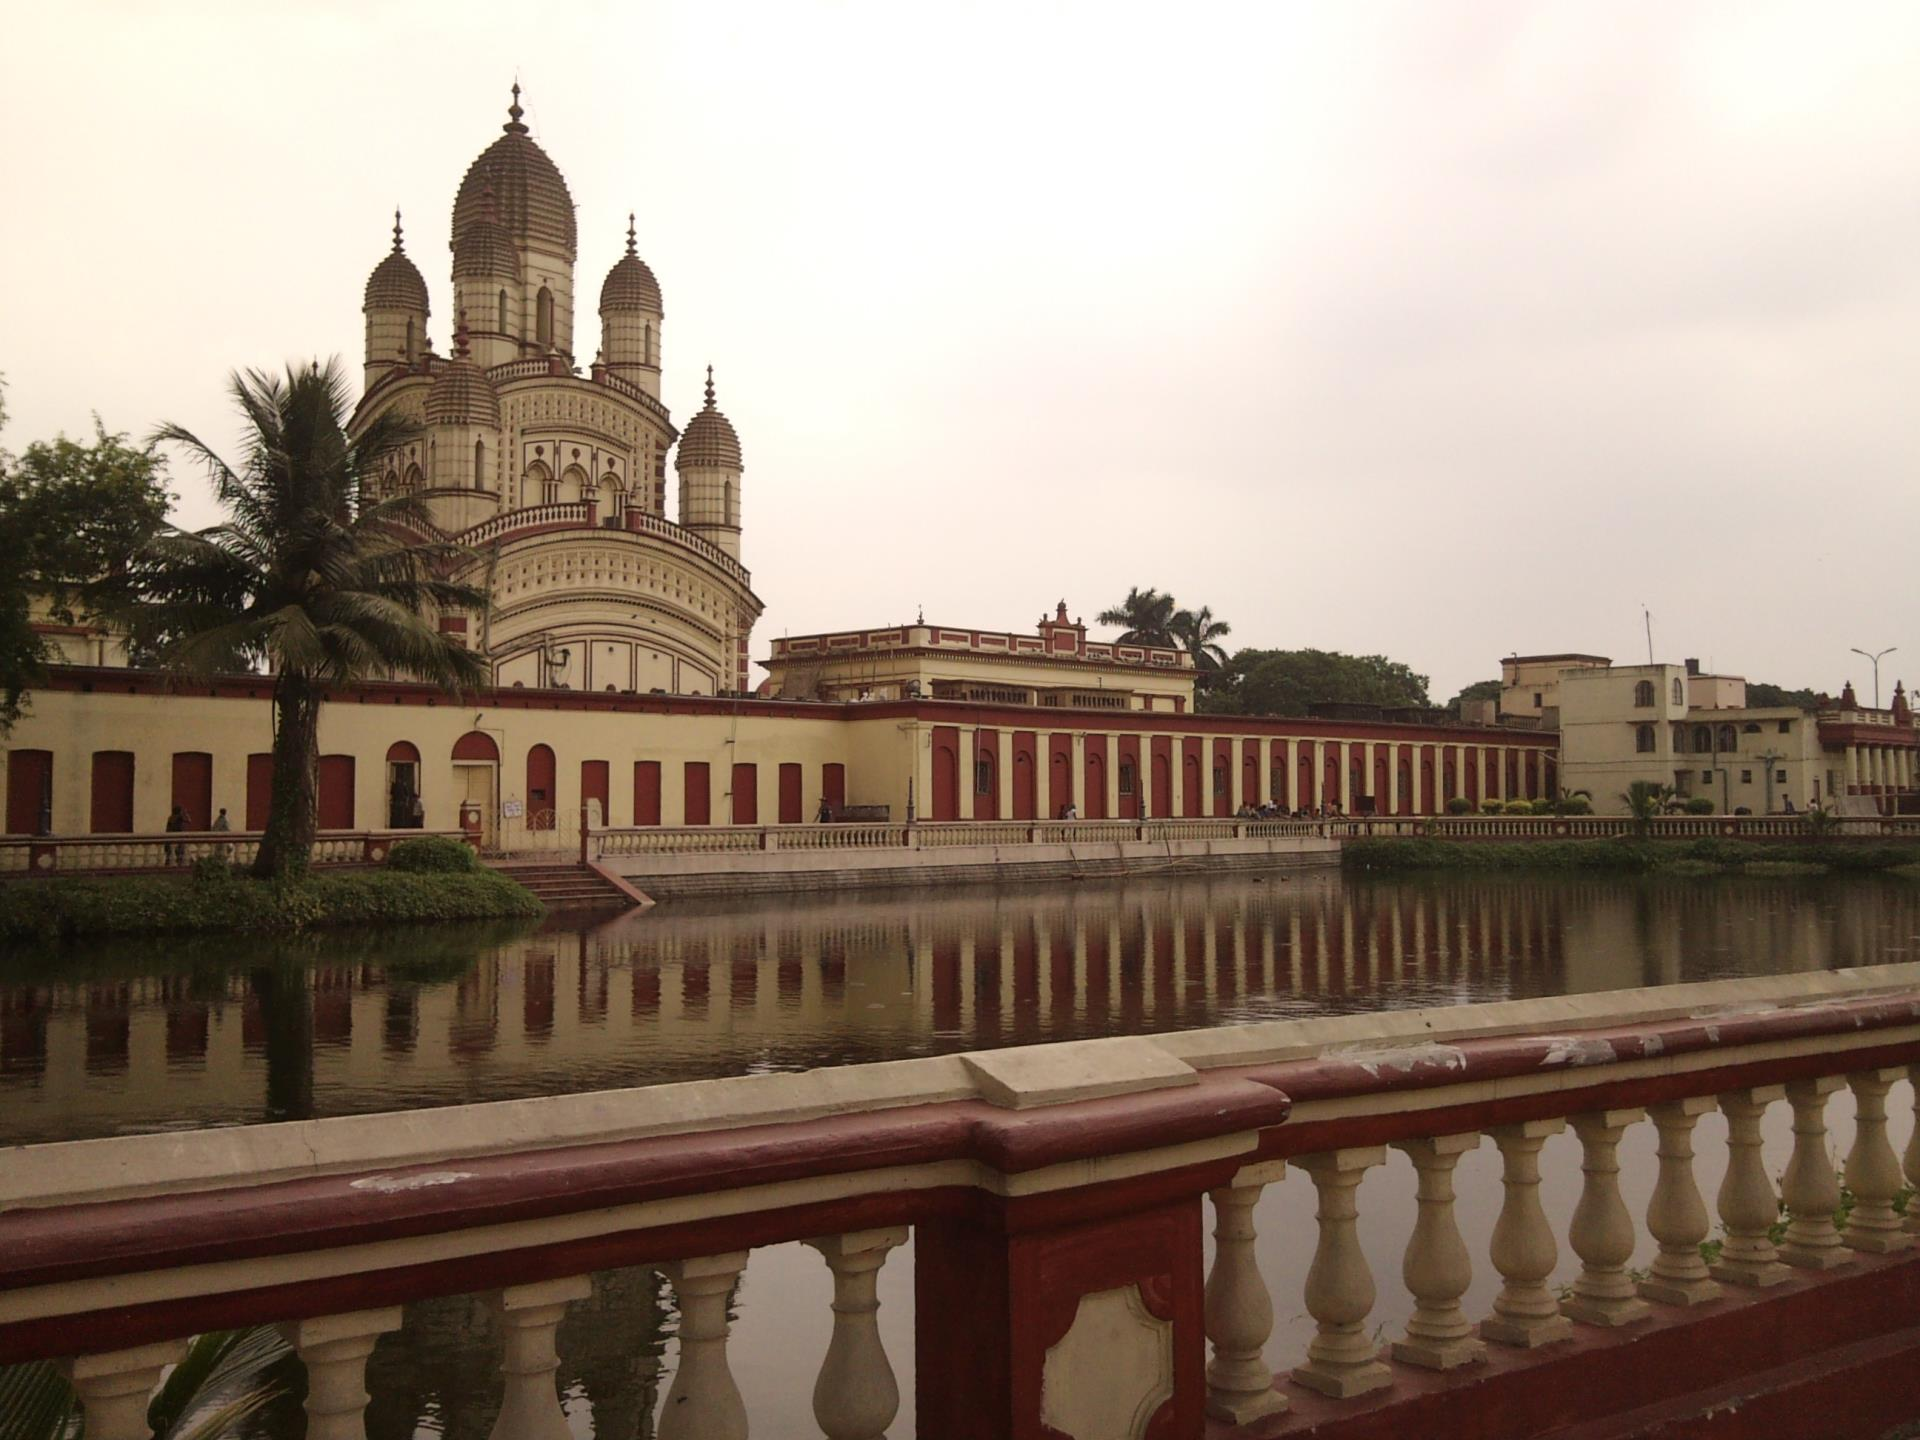 Heritage Monuments & Imperial Cities in India 7